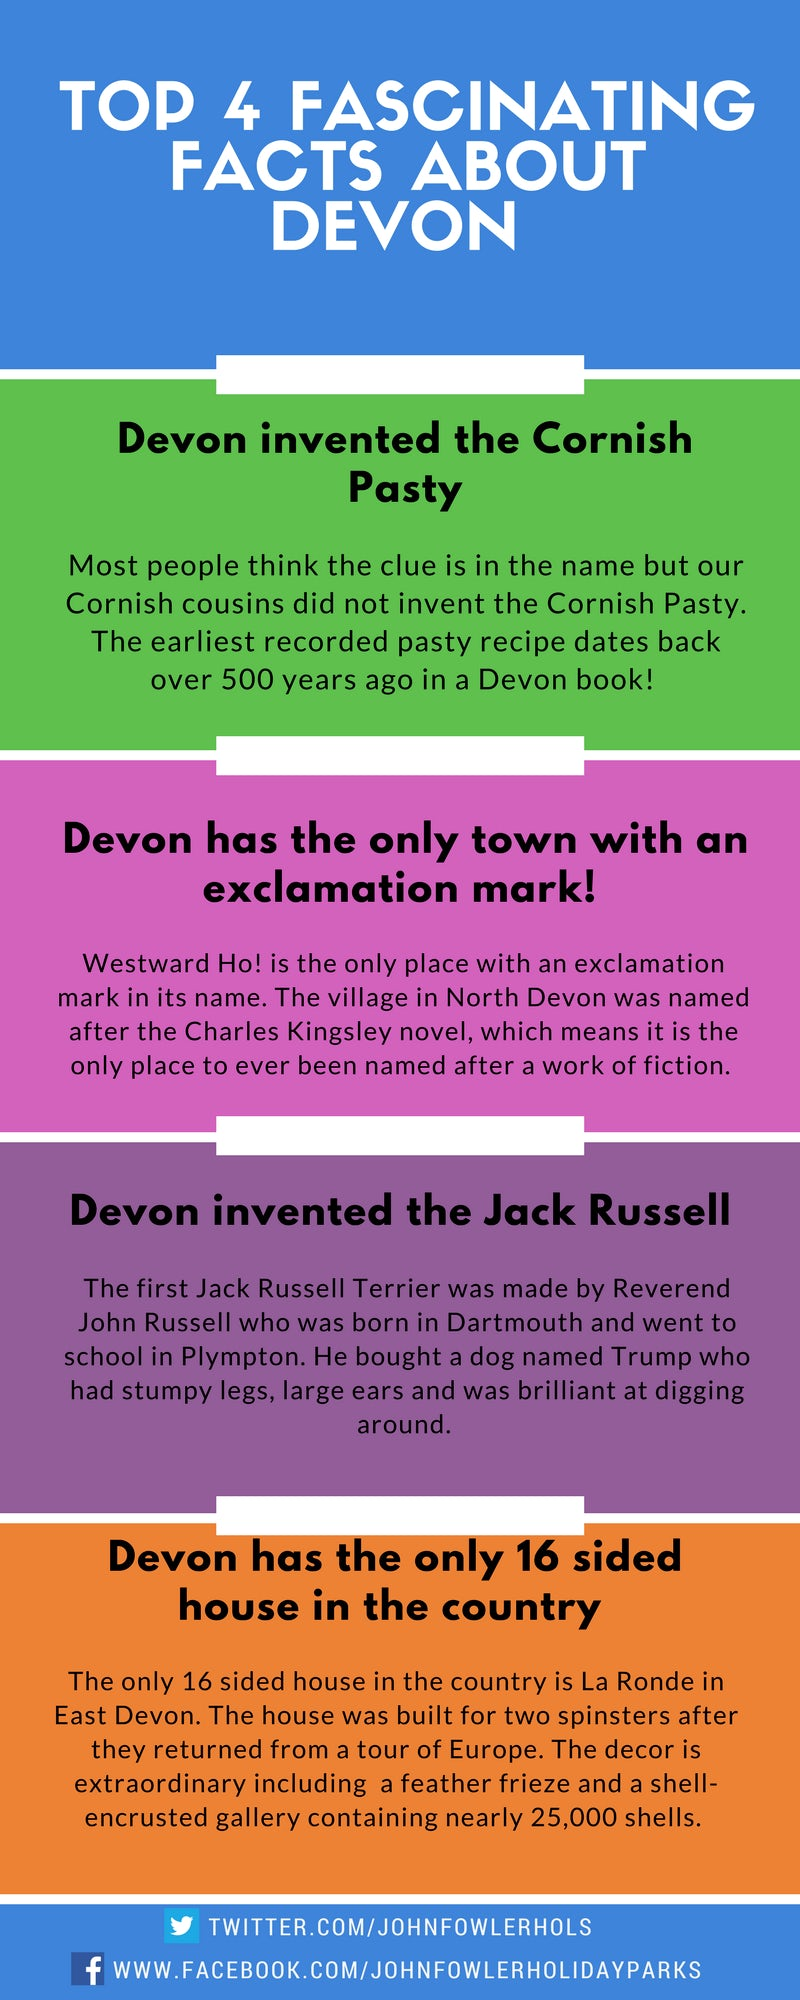 TOP 4 FASCINATING FACTS ABOUT DEVON